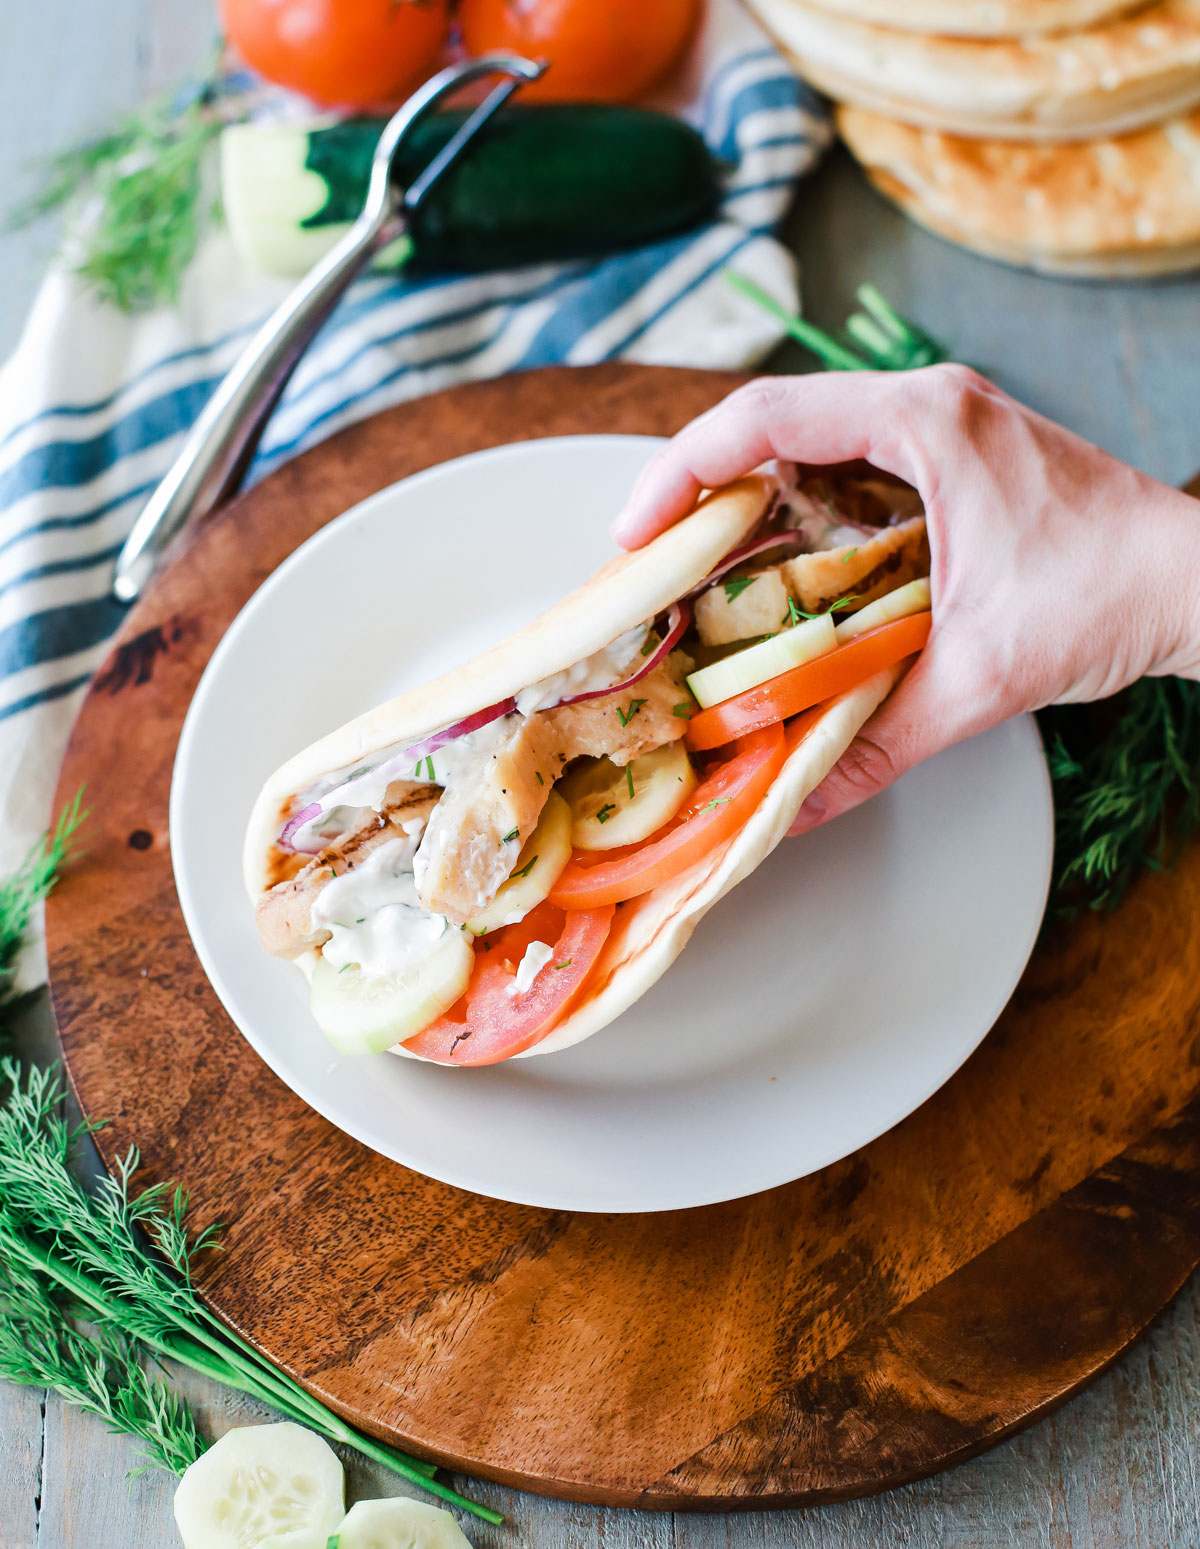 Greek Pita's stuffed with grilled chicken, tomatoes, red onion, cucumber and the best light and refreshing homemade Tzatziki.